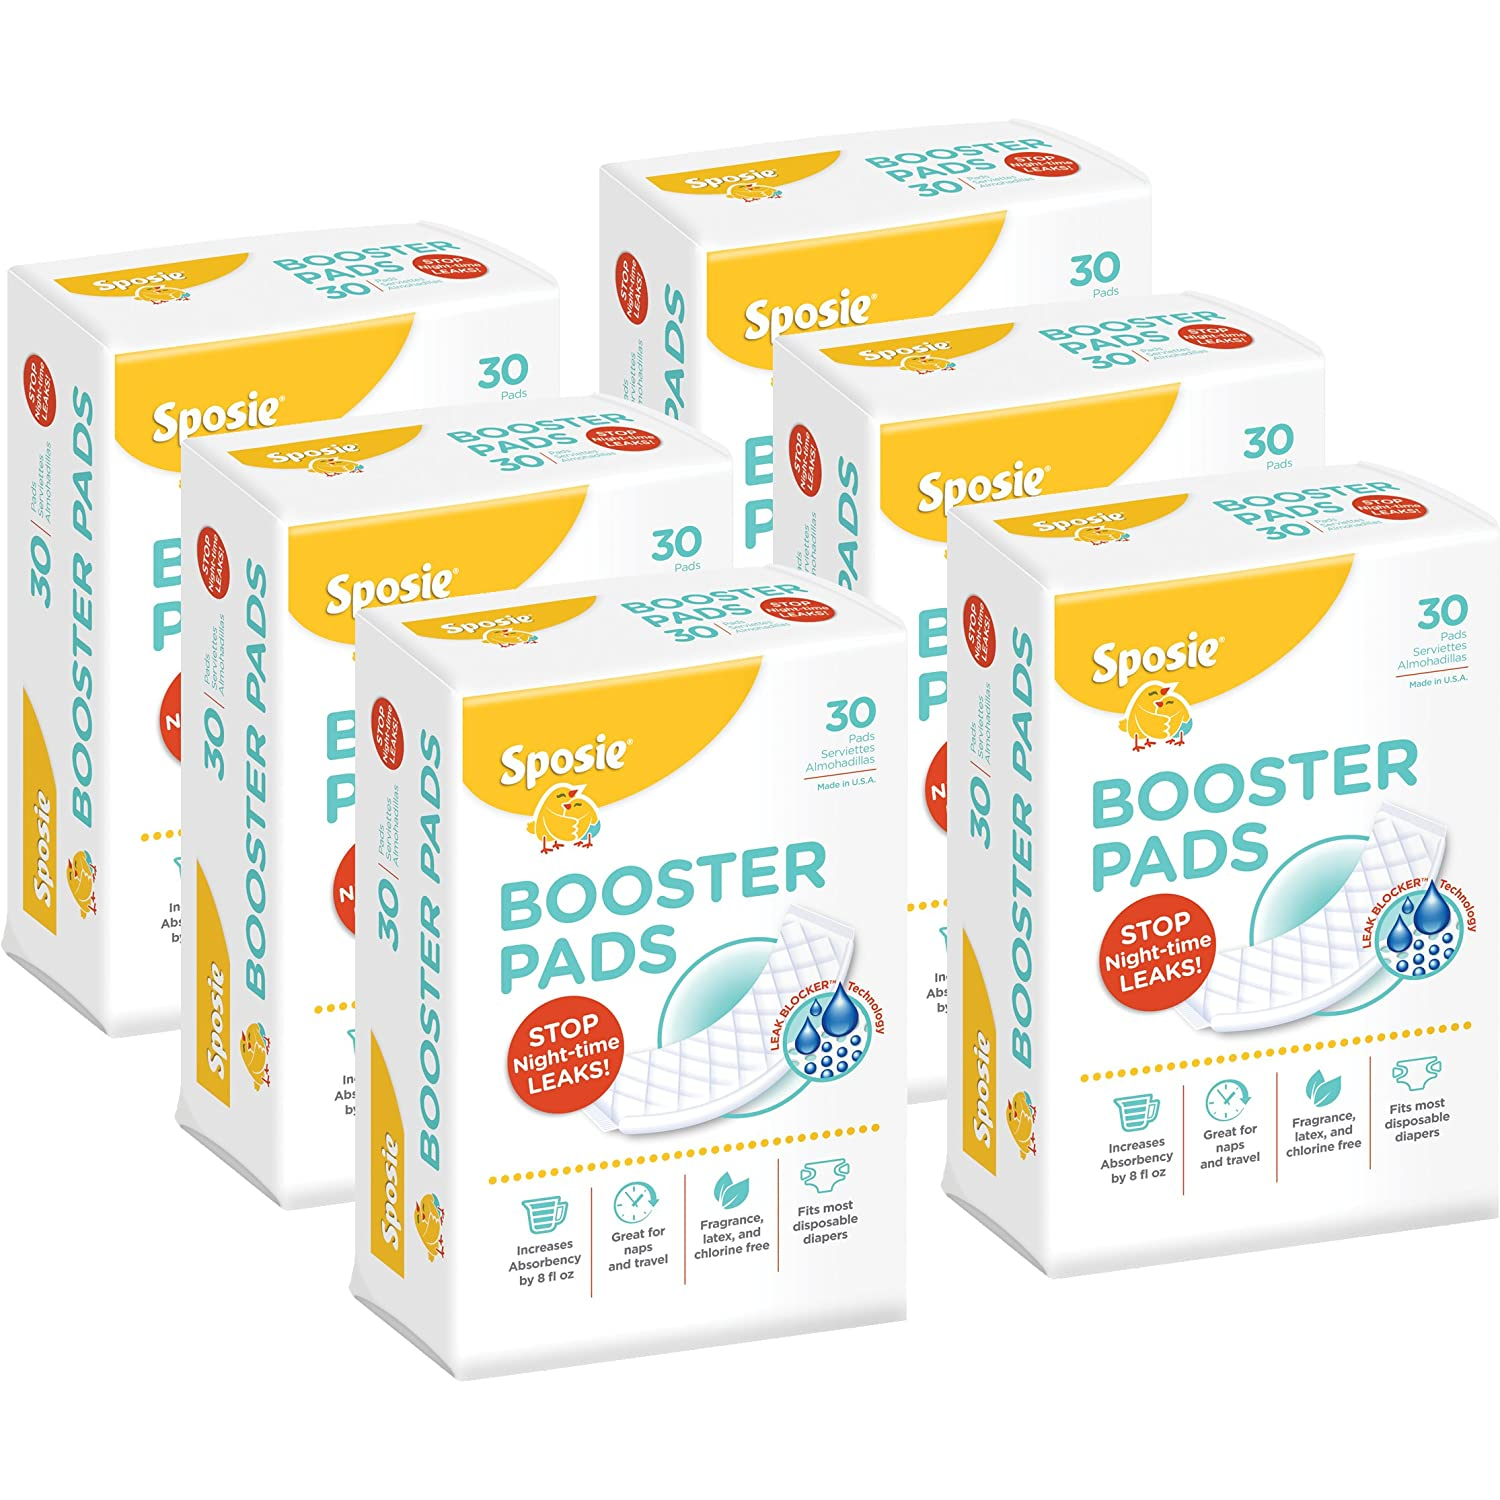 180 Count 6 Packs of 30 Pads Sposie Booster Pads Diaper Doubler